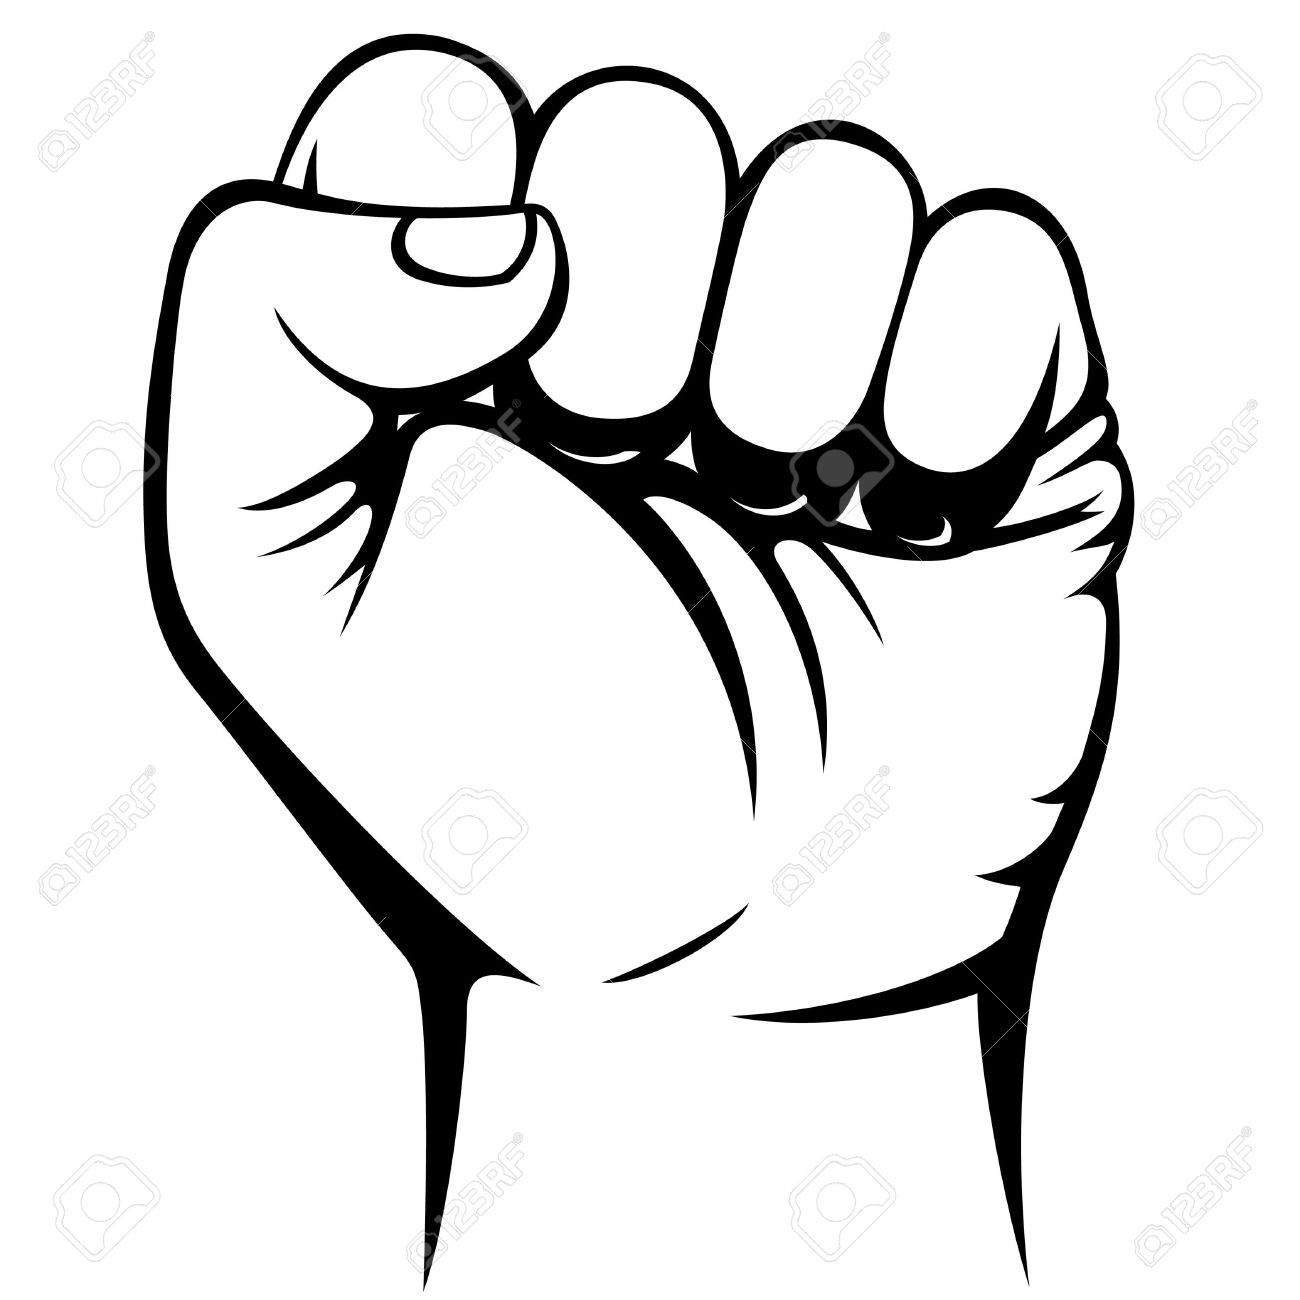 Fist in the air clipart picture royalty free stock Fist Clipart | Free download best Fist Clipart on ClipArtMag.com picture royalty free stock